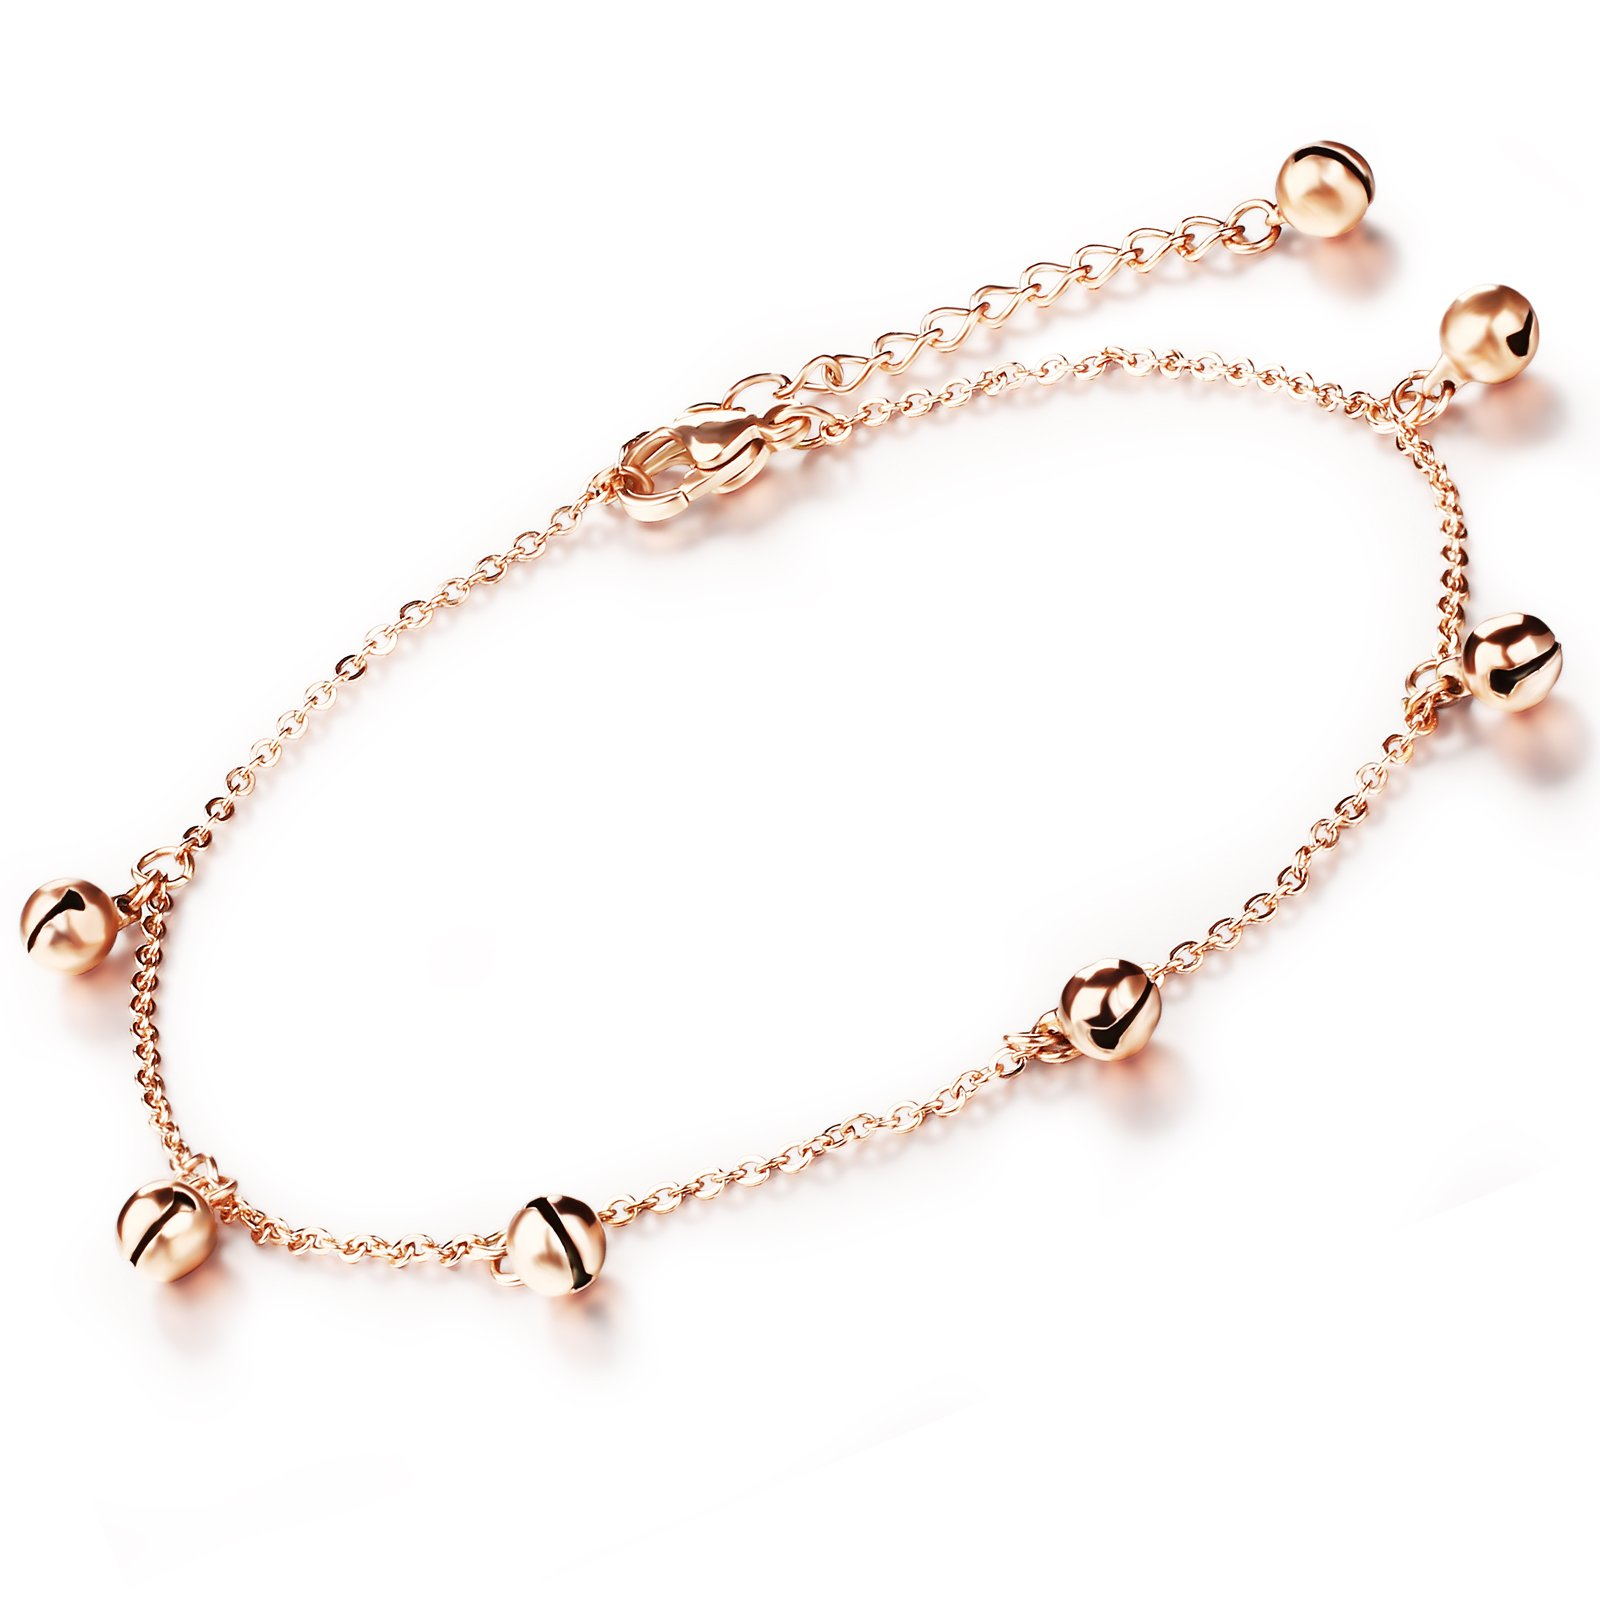 OPK Jewelry Gold Plated Anklet Bracelet Jingle Bells Pendant Foot Chain Women Summer Jewelry